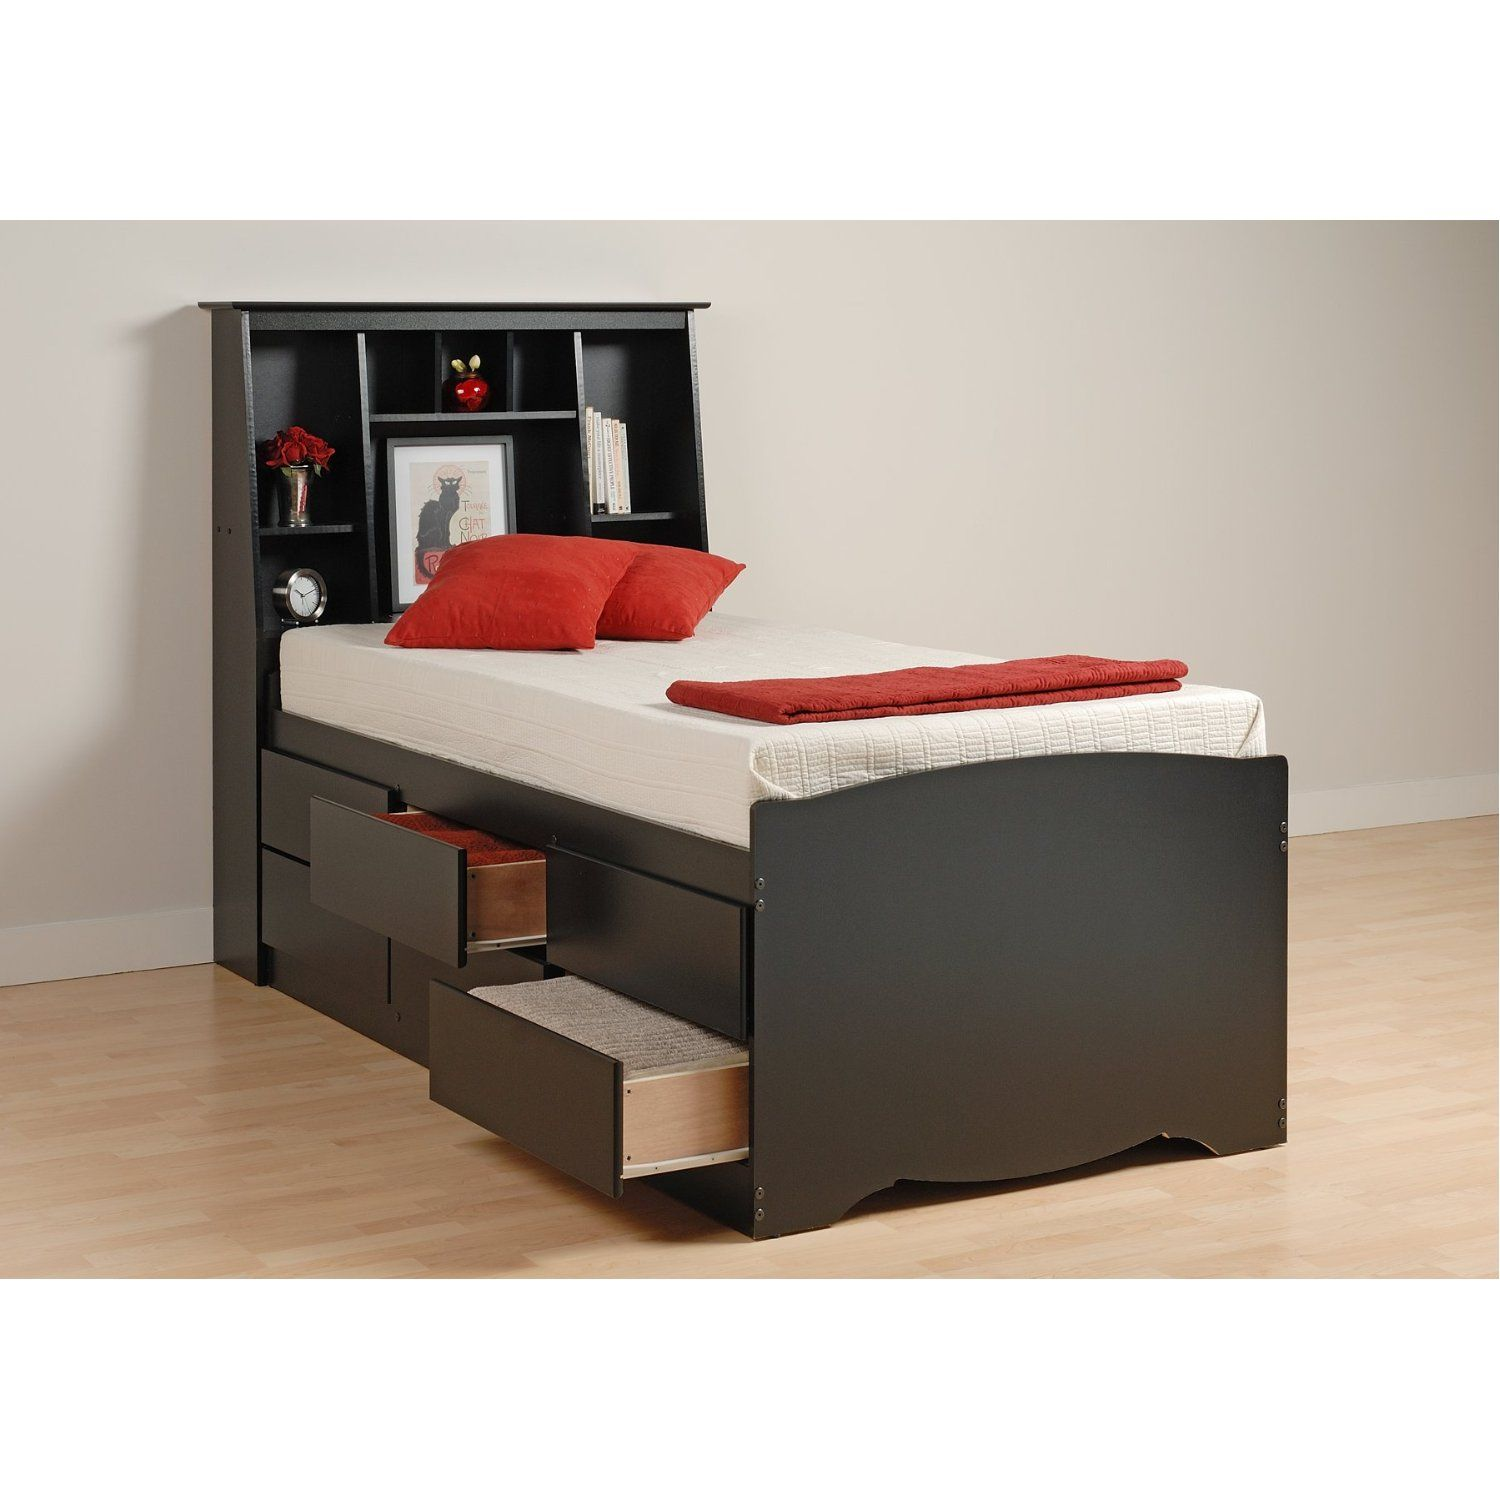 Twin XL bed frame (6drawers) 369.93 Twin xl bed frame